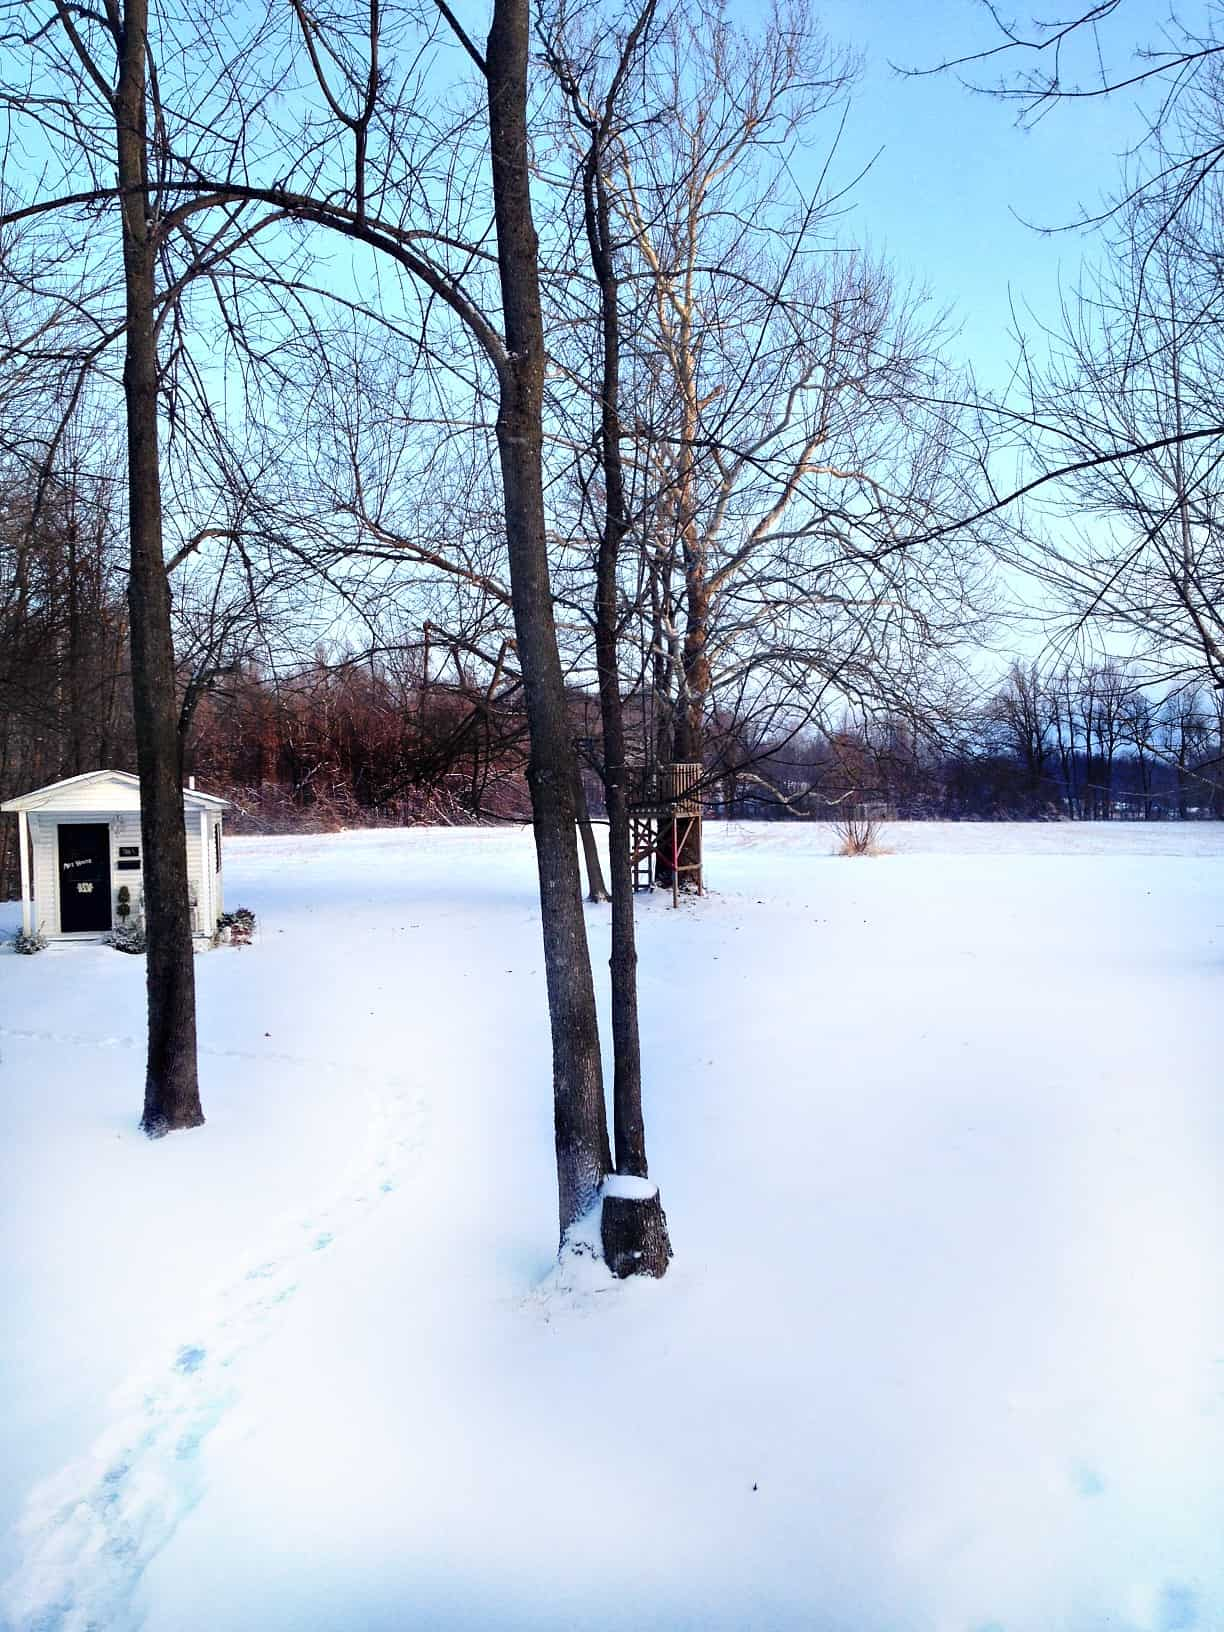 Thistlewood Farms snow-covered backyard with a small white shed and bare trees, with a snowy forest in the background